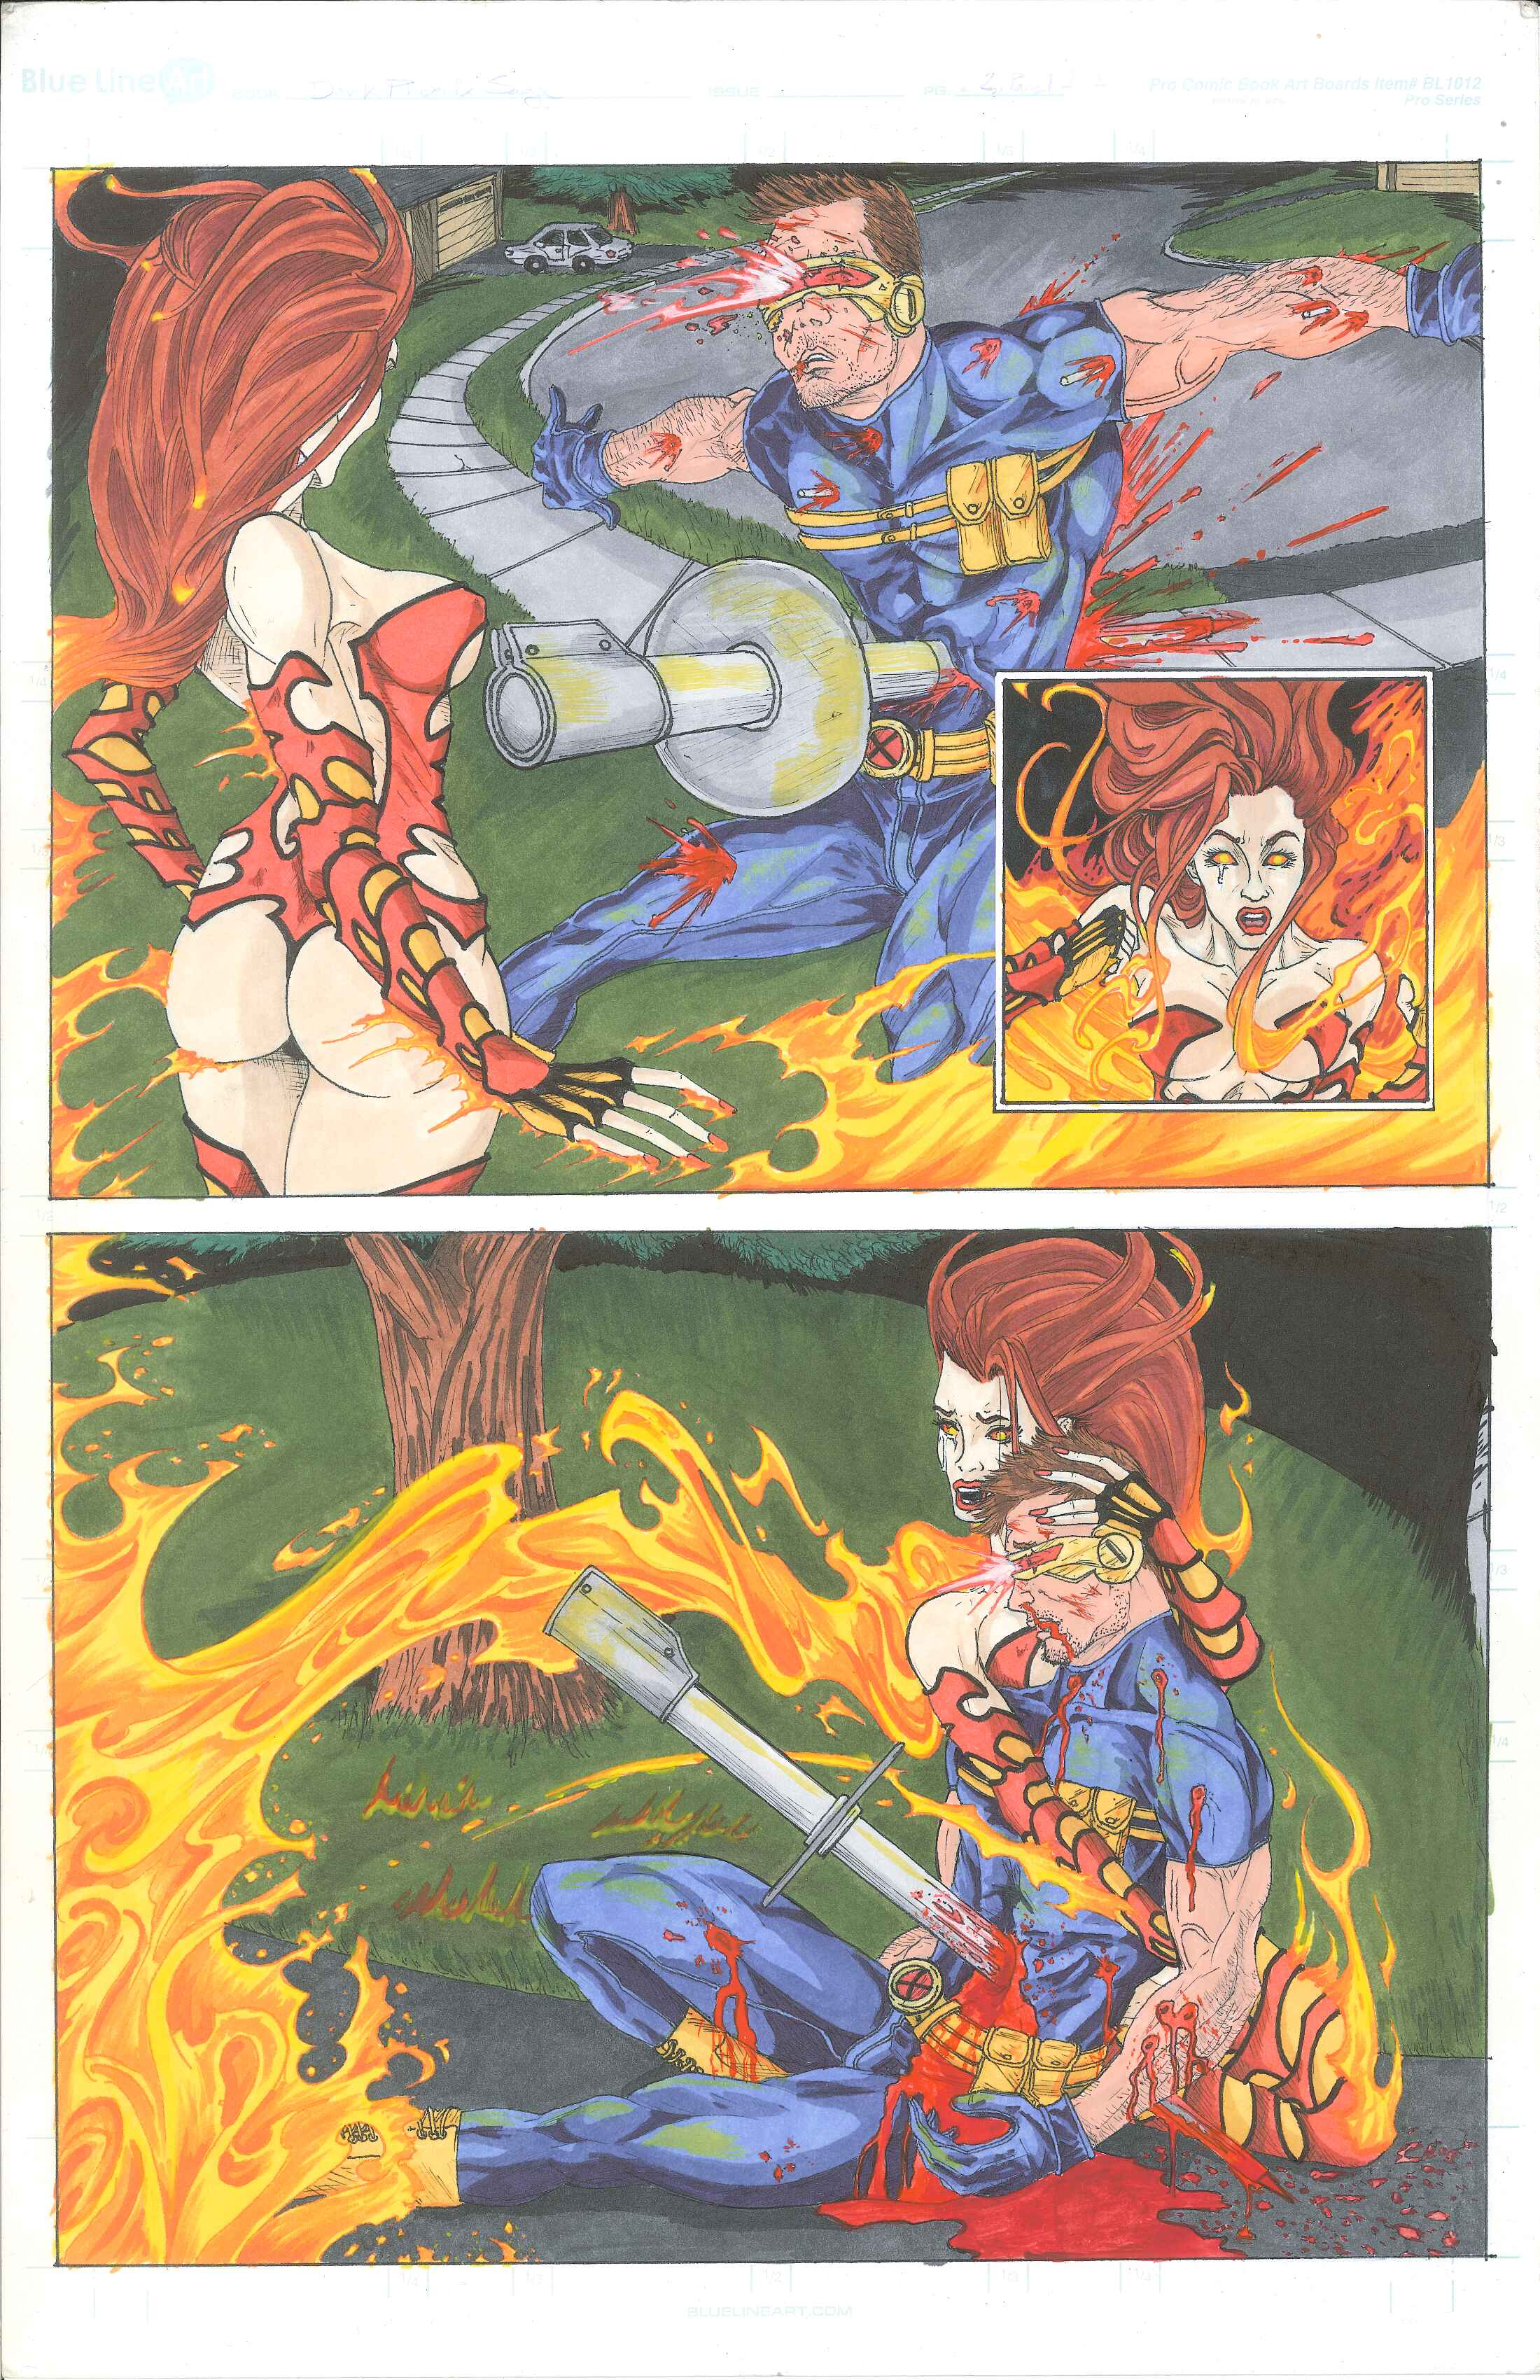 X-men Supreme Issue 68: The Phoenix Saga Part 1 Panel 2